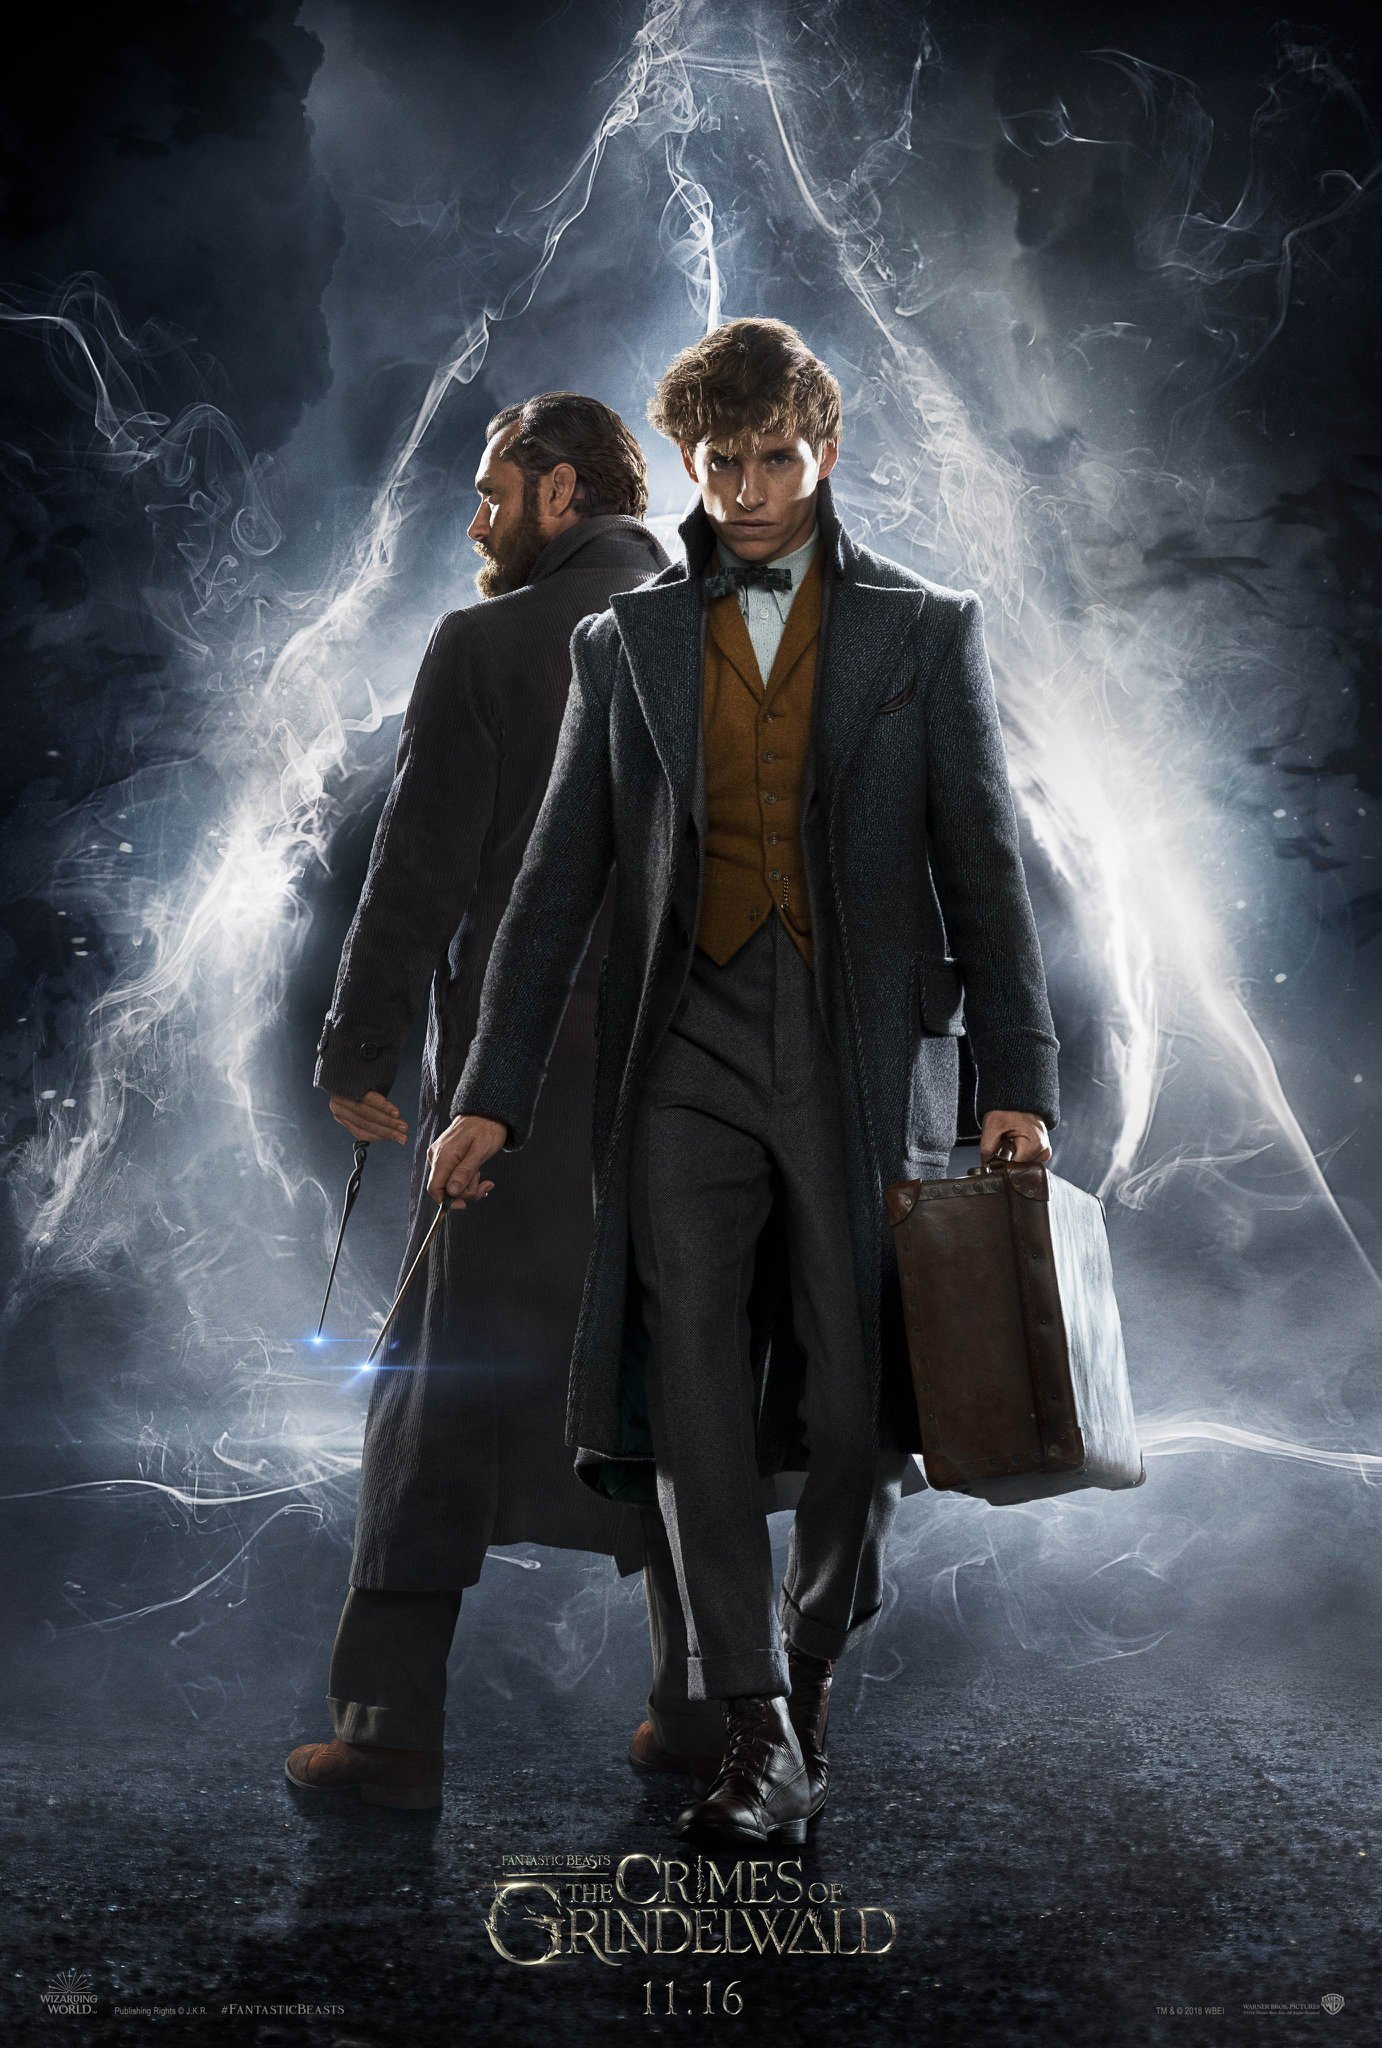 Fantastic Beasts The Crimes of Grindelwald Poster Maart 2018